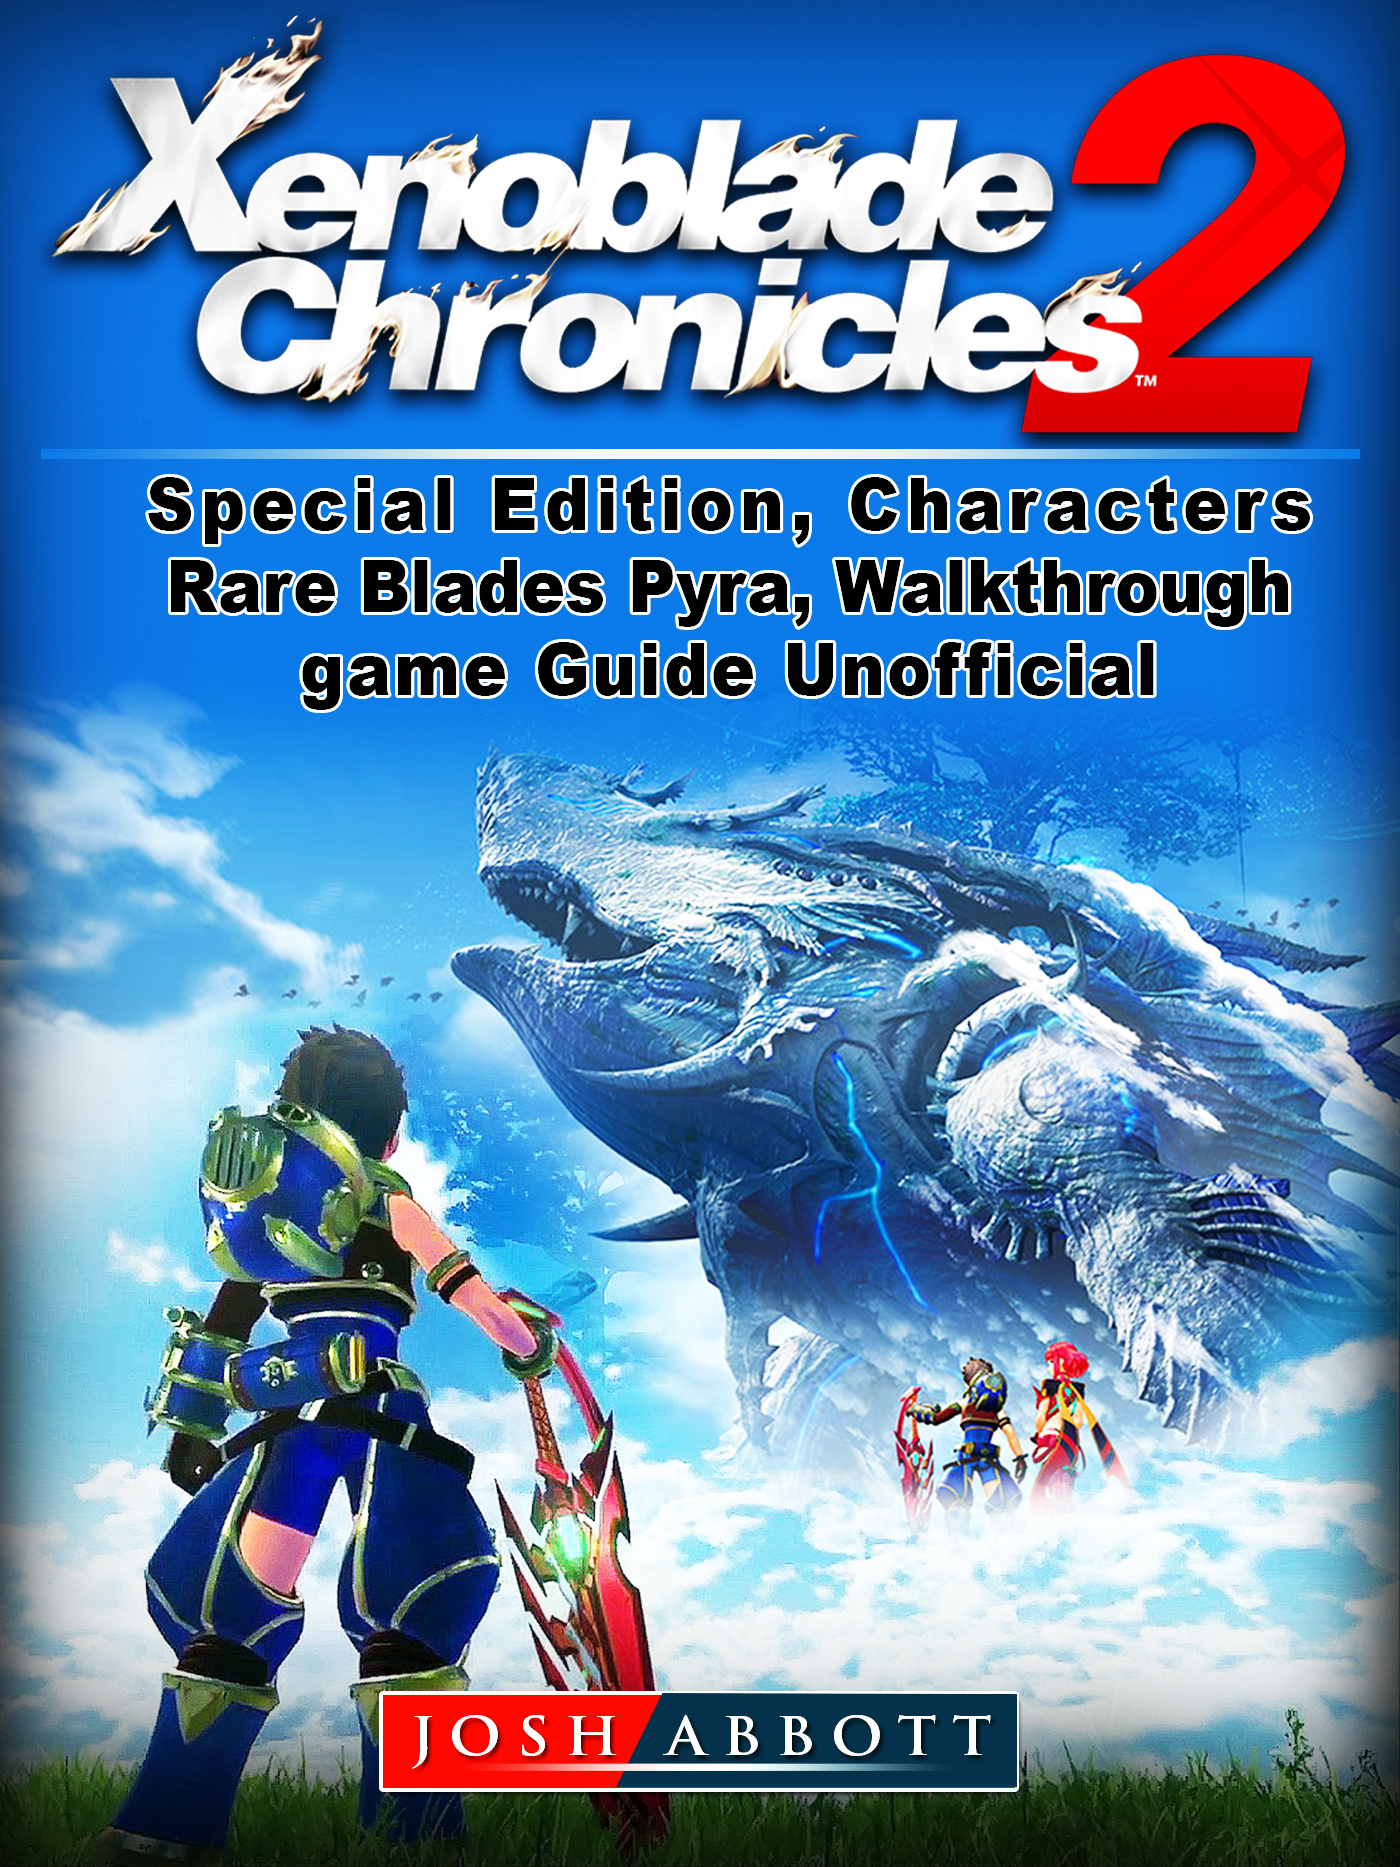 Xenoblade Chronicles 2, Special Edition, Characters, Rare Blades, Pyra, Walkthrough, Game Guide Unofficial By Josh Abbott